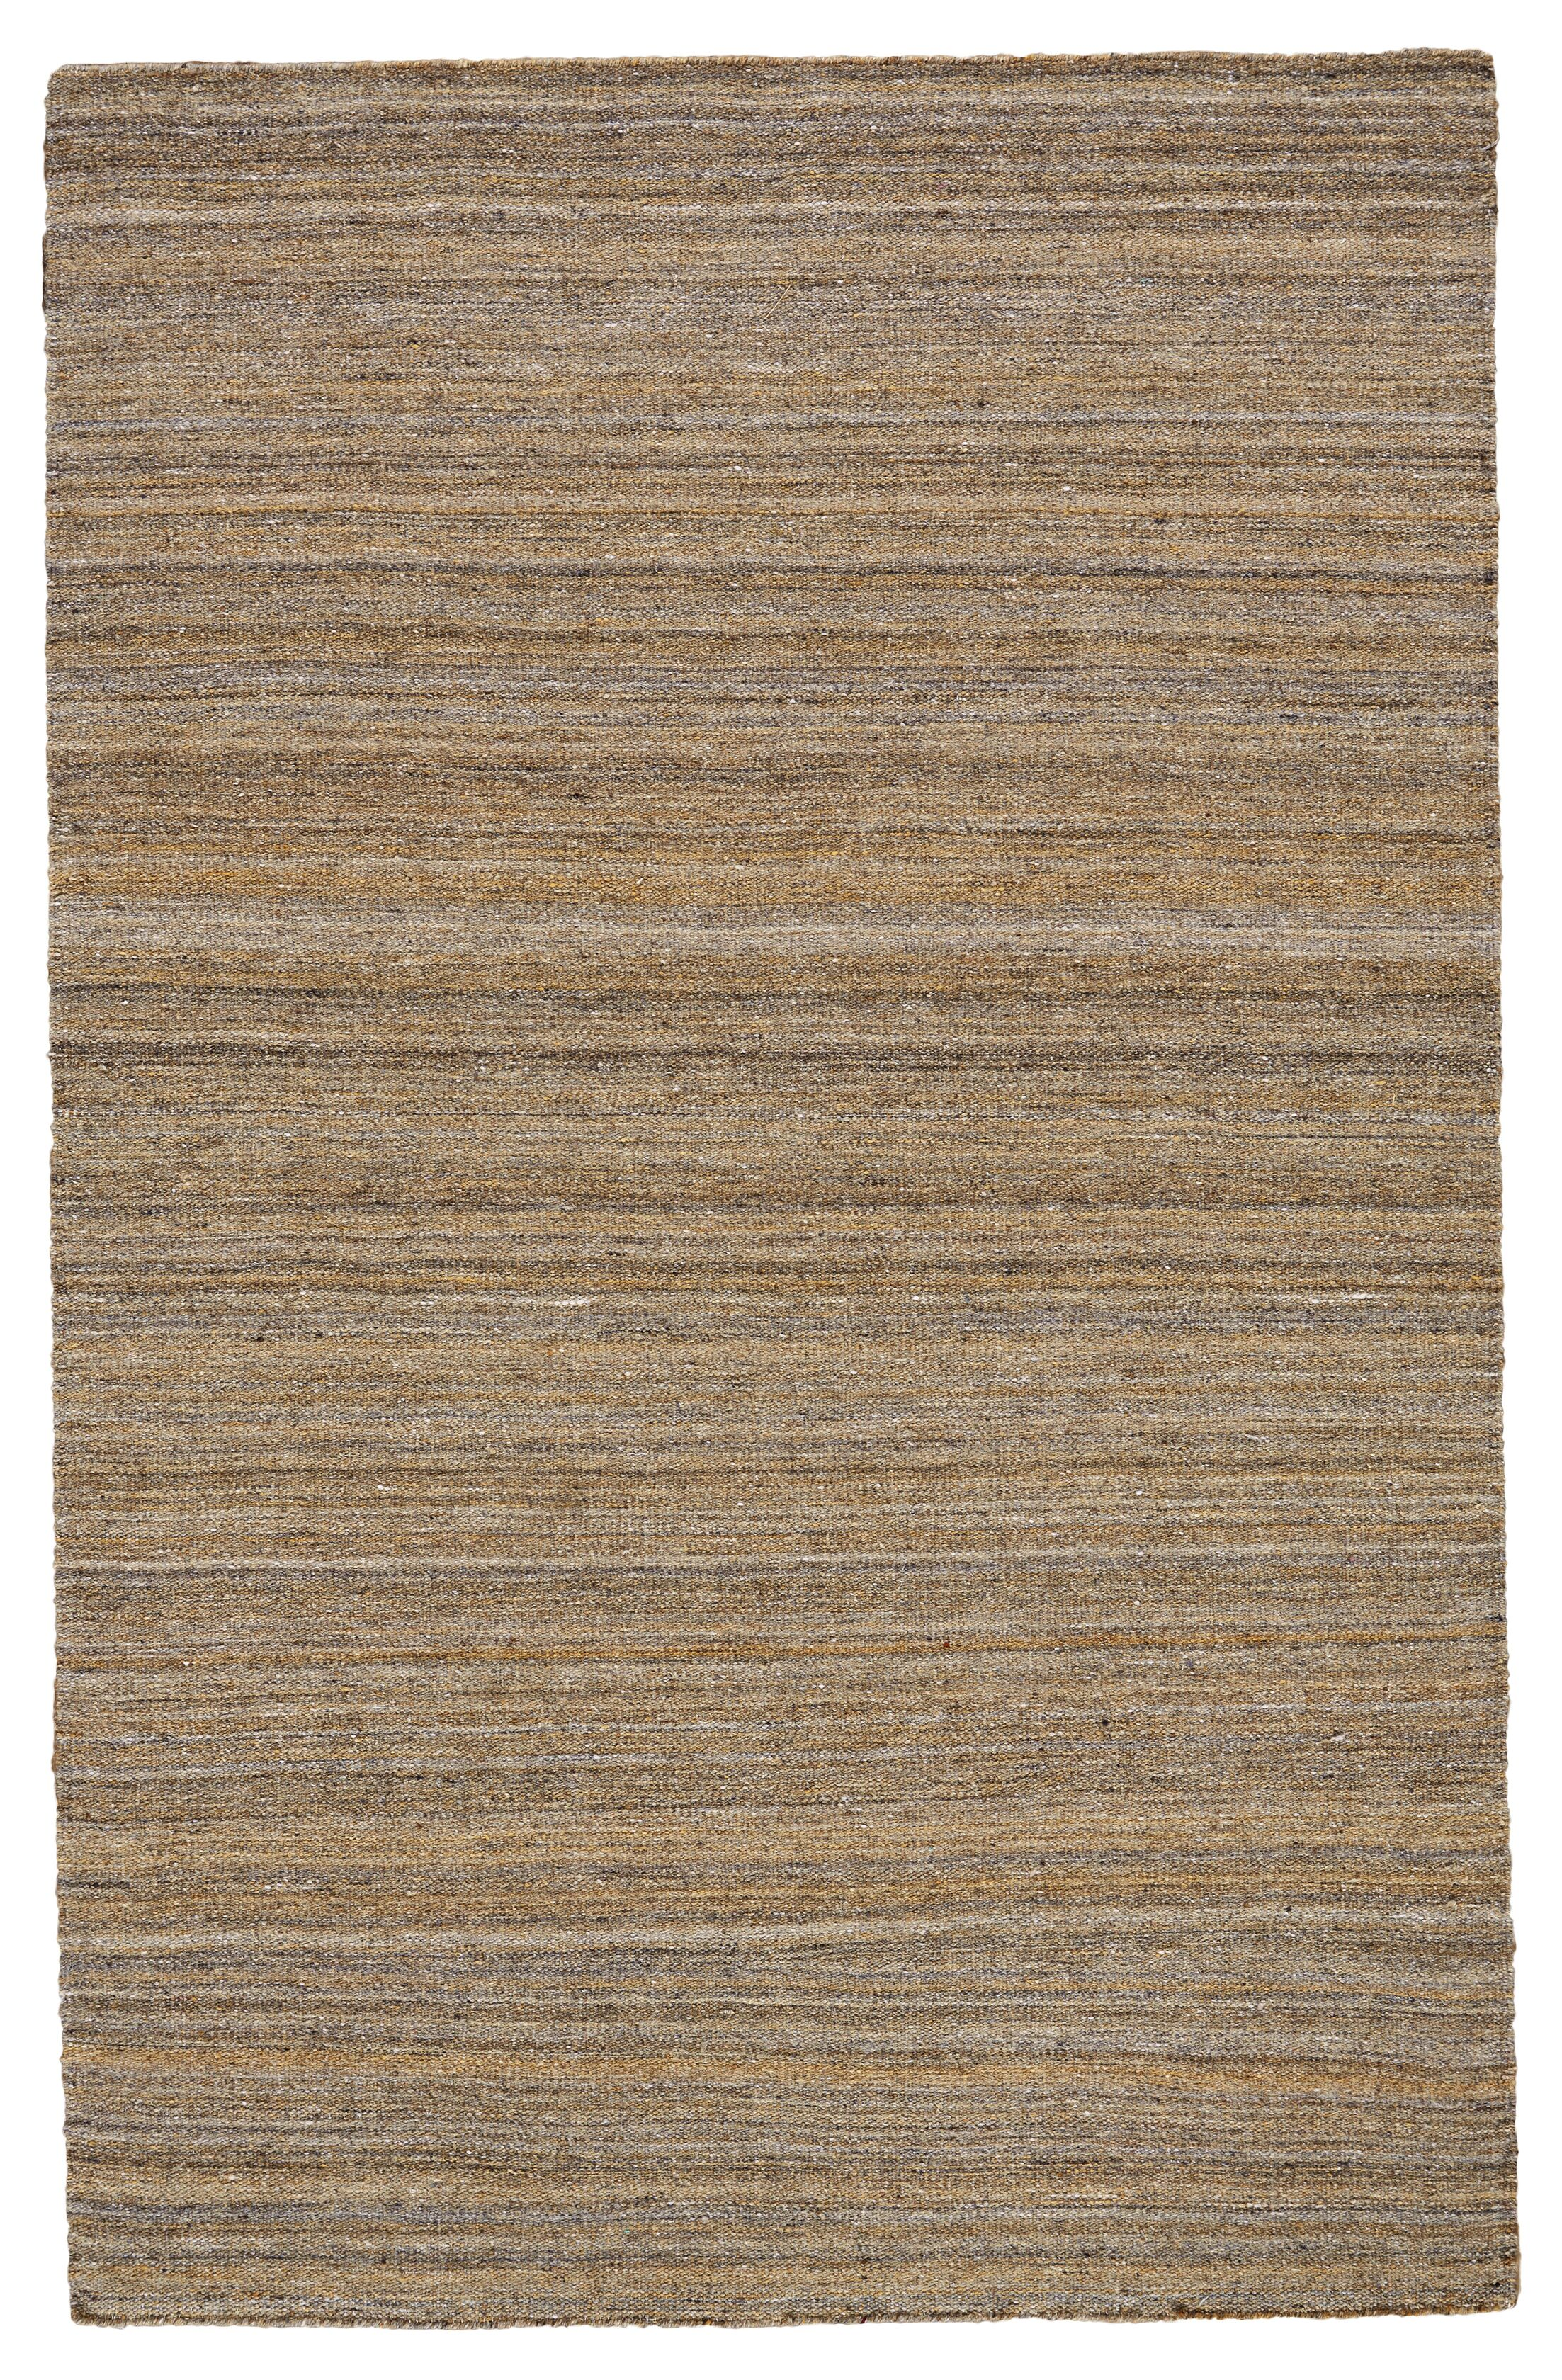 Mcmurtry Hand-Woven Wool Brown Area Rug Rug Size: Rectangle 8' x 10'